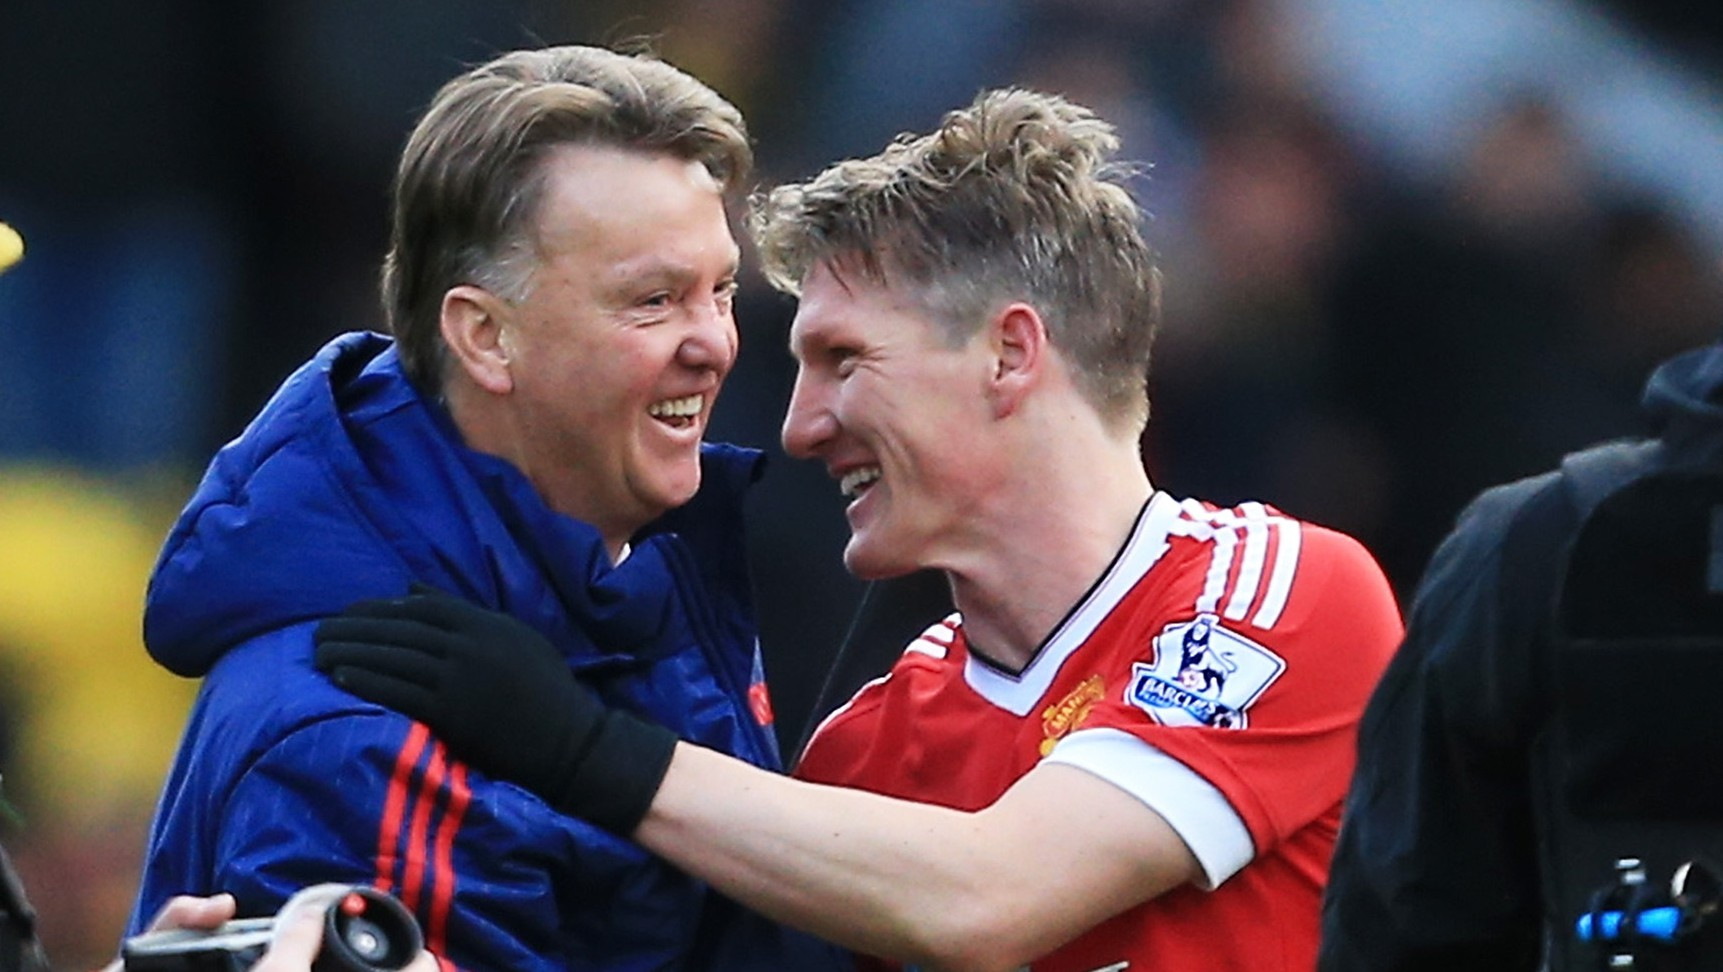 WATFORD, ENGLAND - NOVEMBER 21: Manager Louis van Gaal (2nd L) and Bastian Schweinsteiger (2nd R) of Manchester United celebrate their 2-1 win in the Barclays Premier League match between Watford and Manchester United at Vicarage Road on November 21, 2015 in Watford, England. (Photo by Stephen Pond/Getty Images)